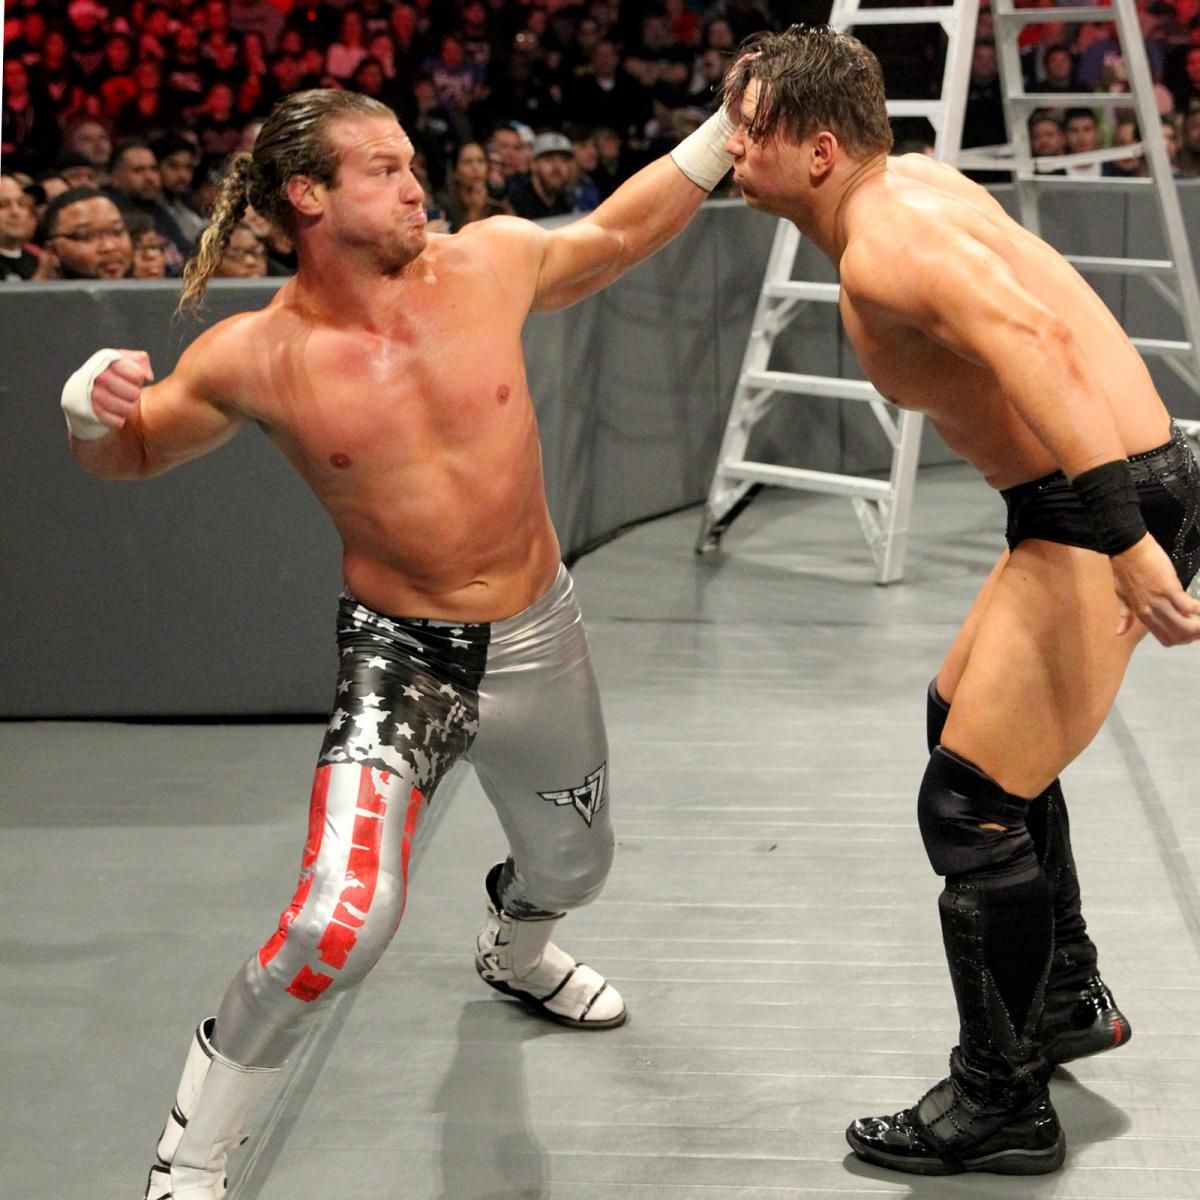 Photos: Miz, Dolph step it up in a Ladder Match for the ...